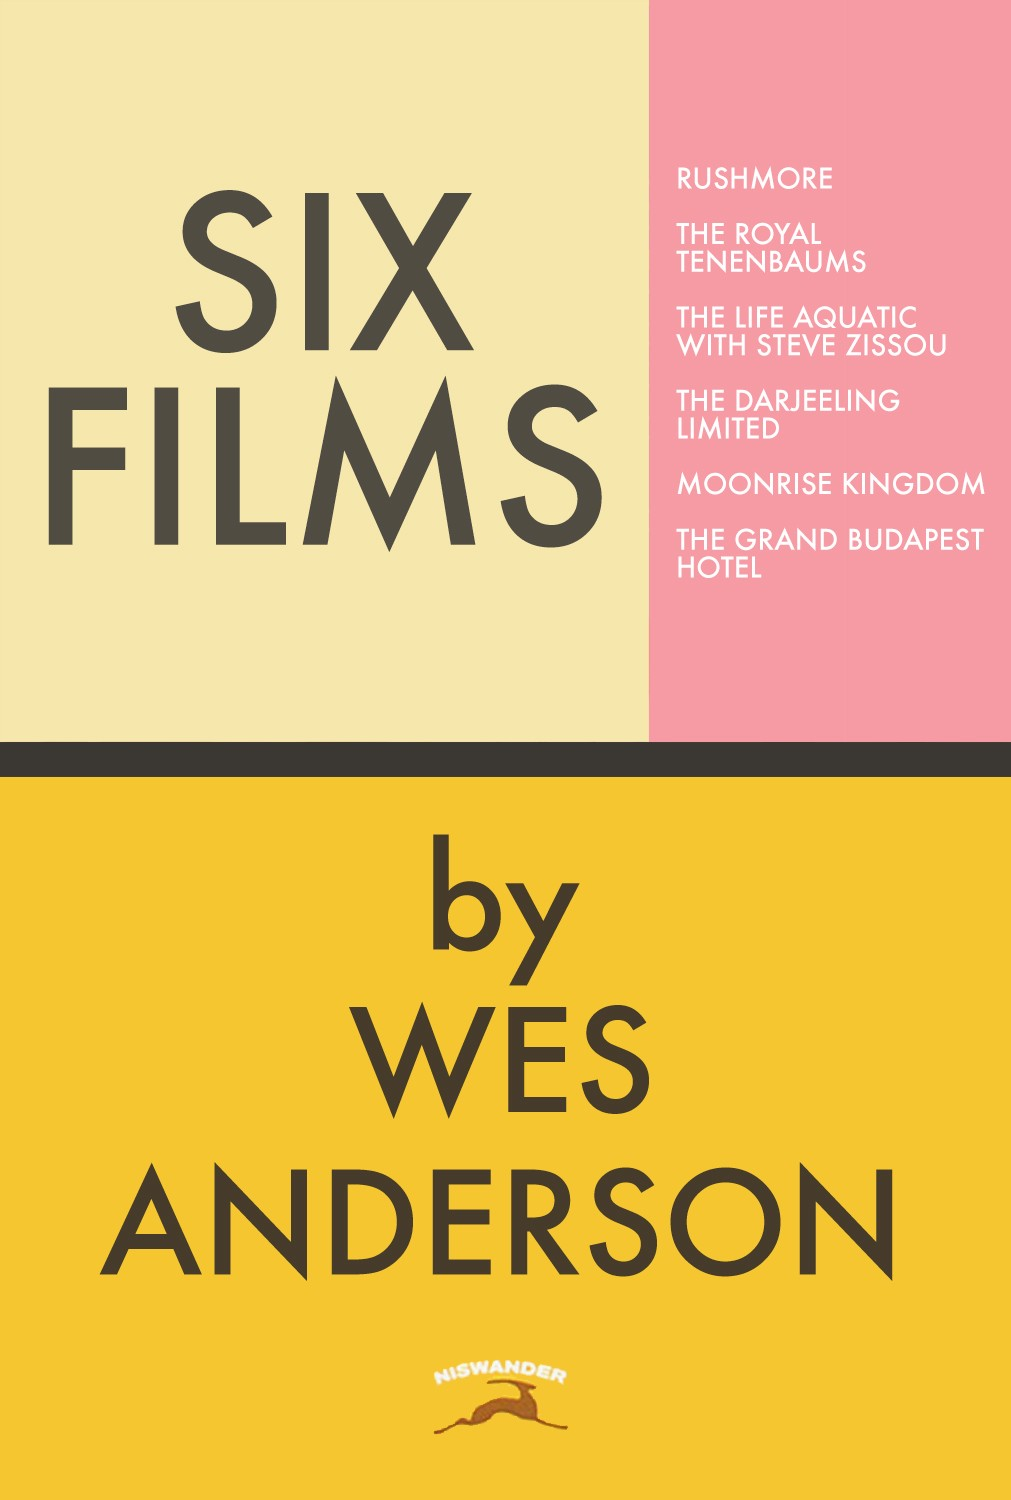 SIX FILMS BY WES ANDERSON